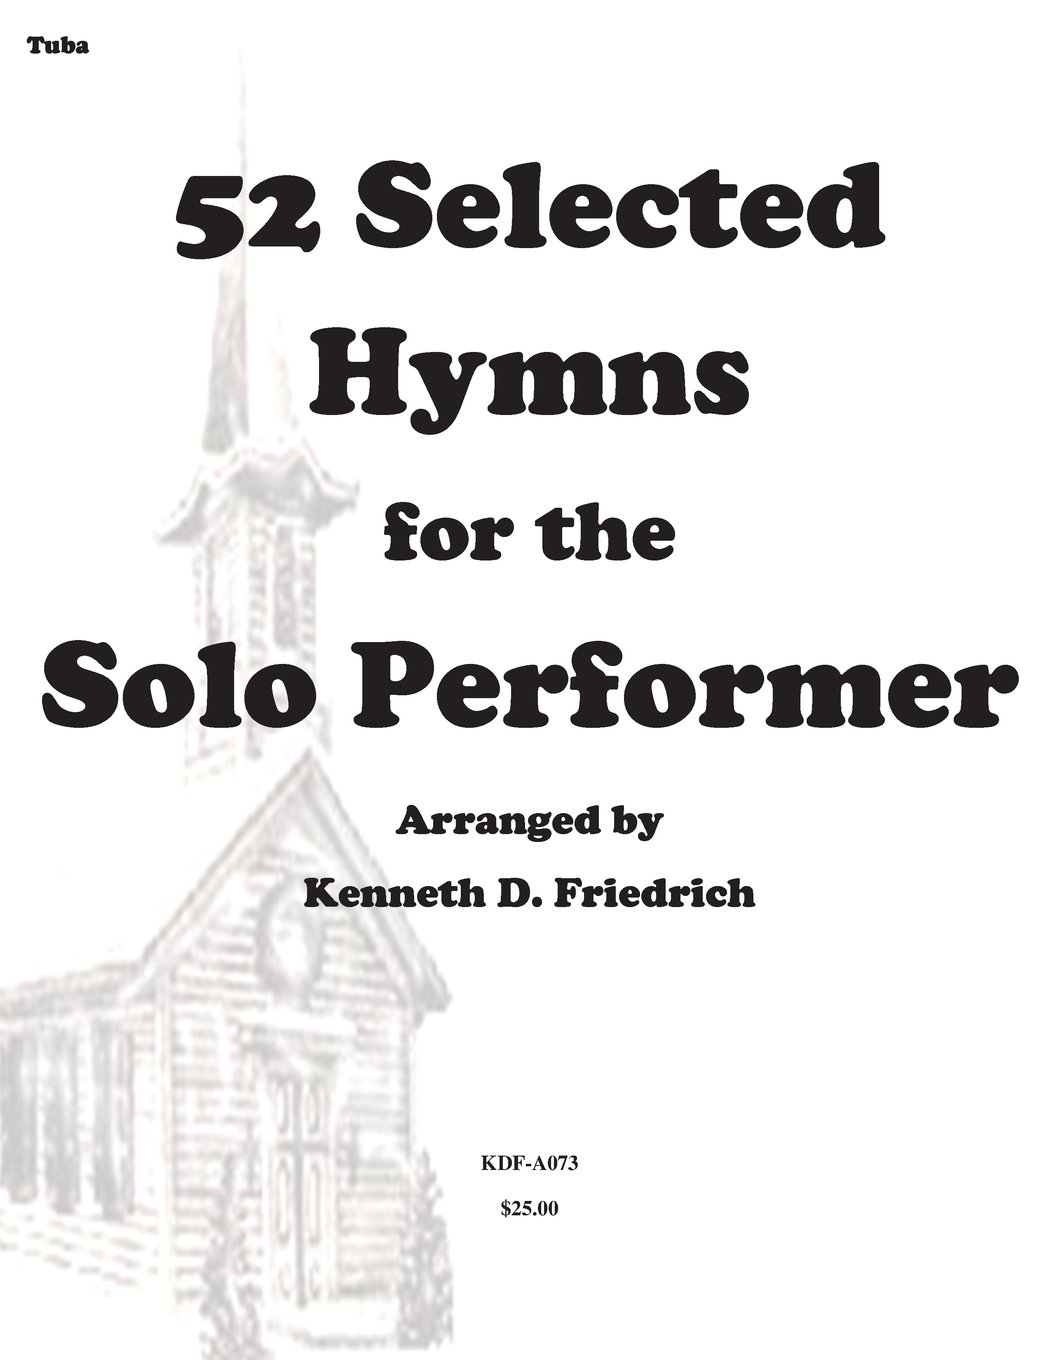 Download 52 Selected Hymns for the Solo Performer-tuba version PDF ePub ebook